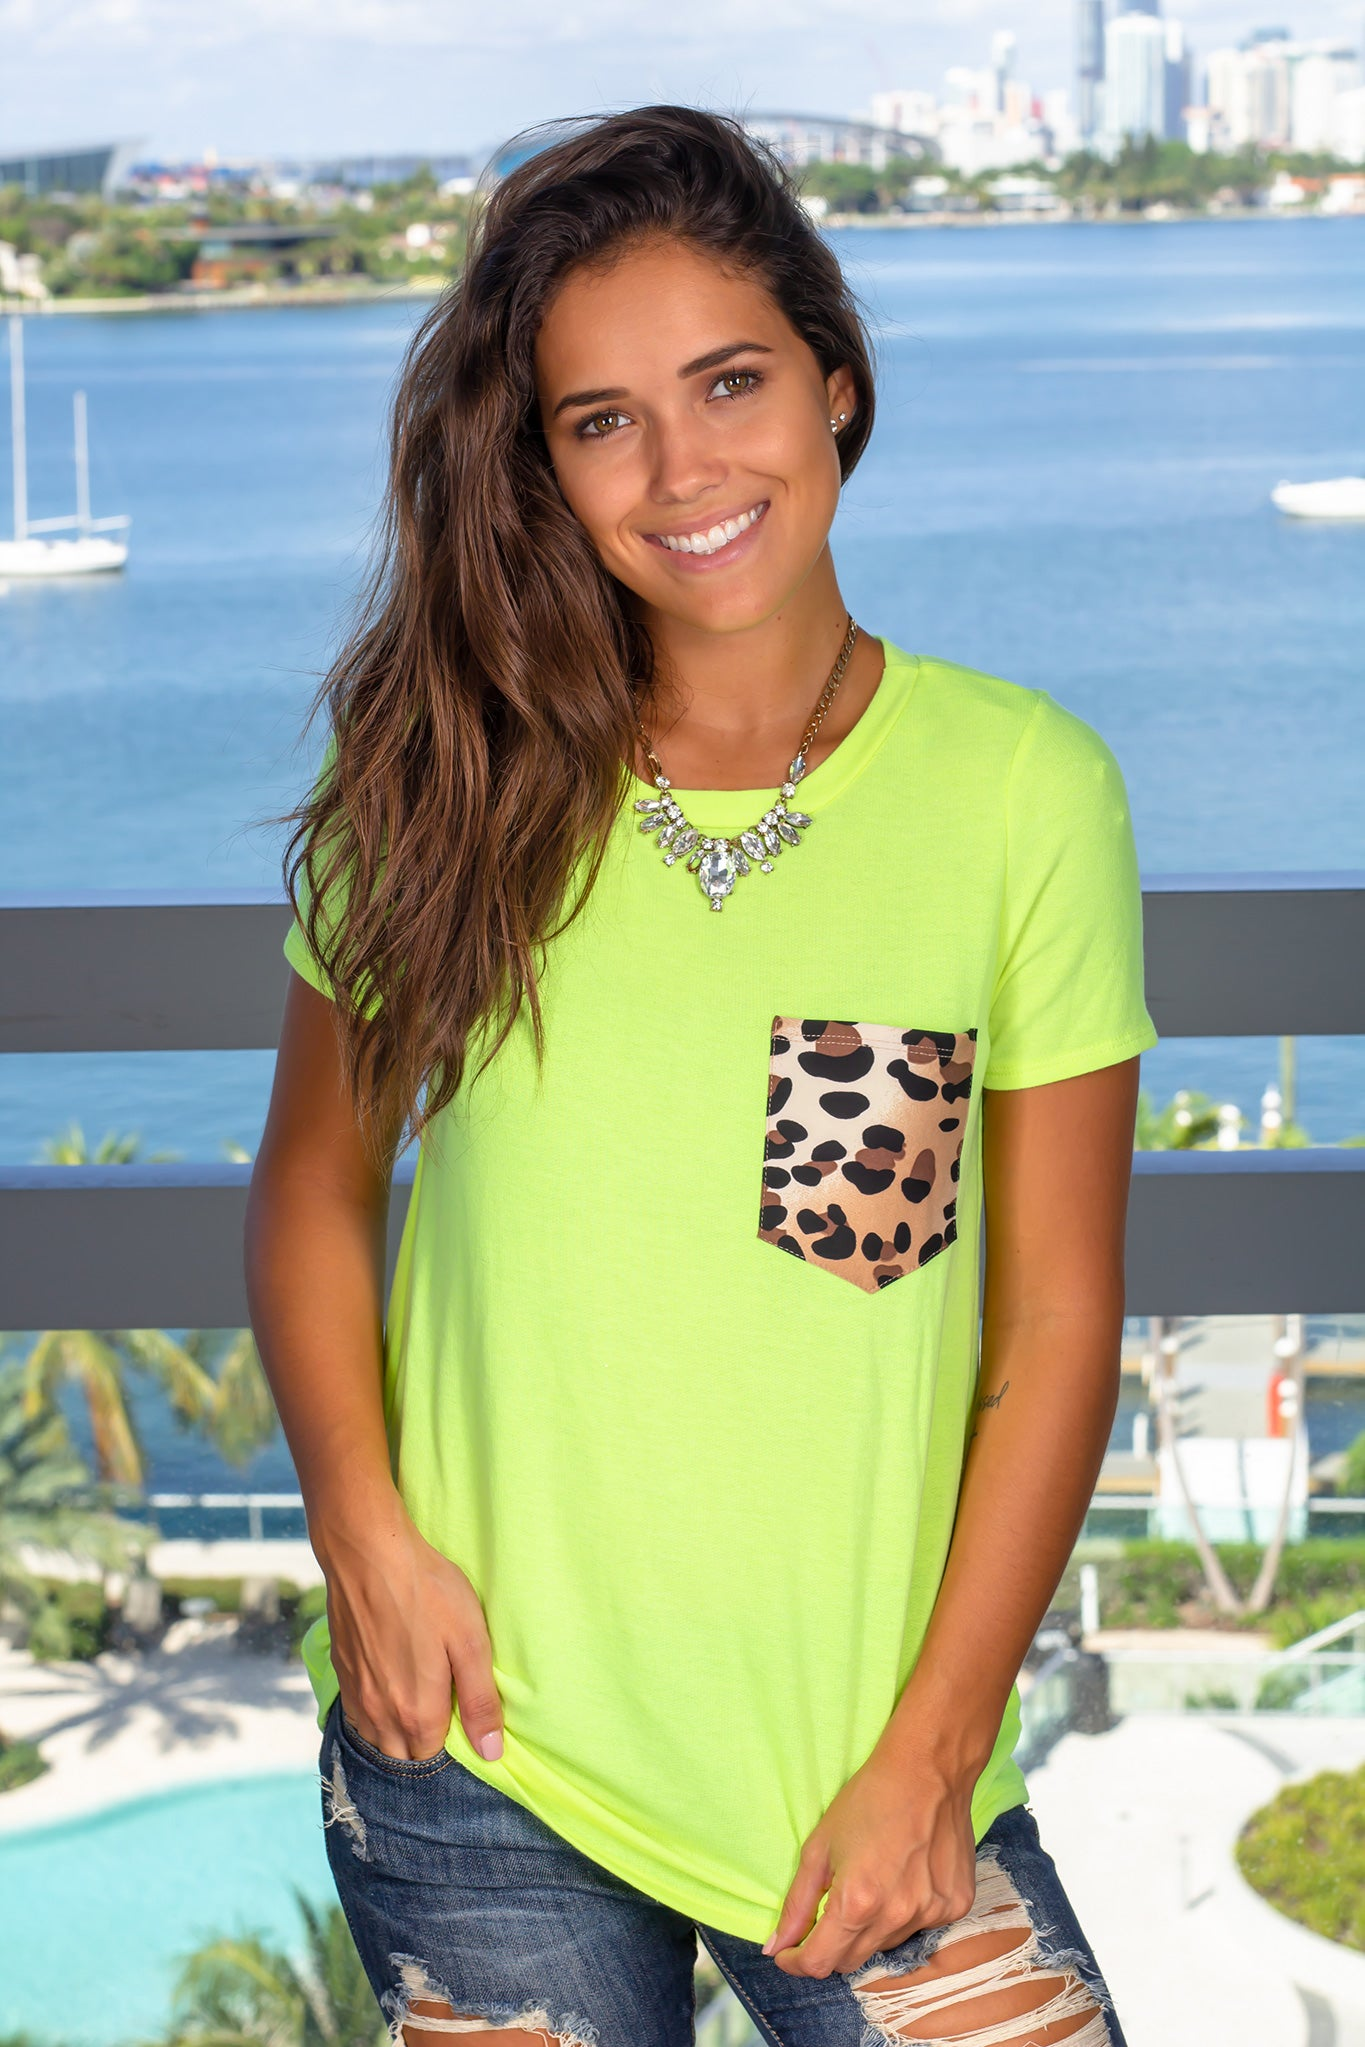 Neon Yellow Top with Leopard Pocket